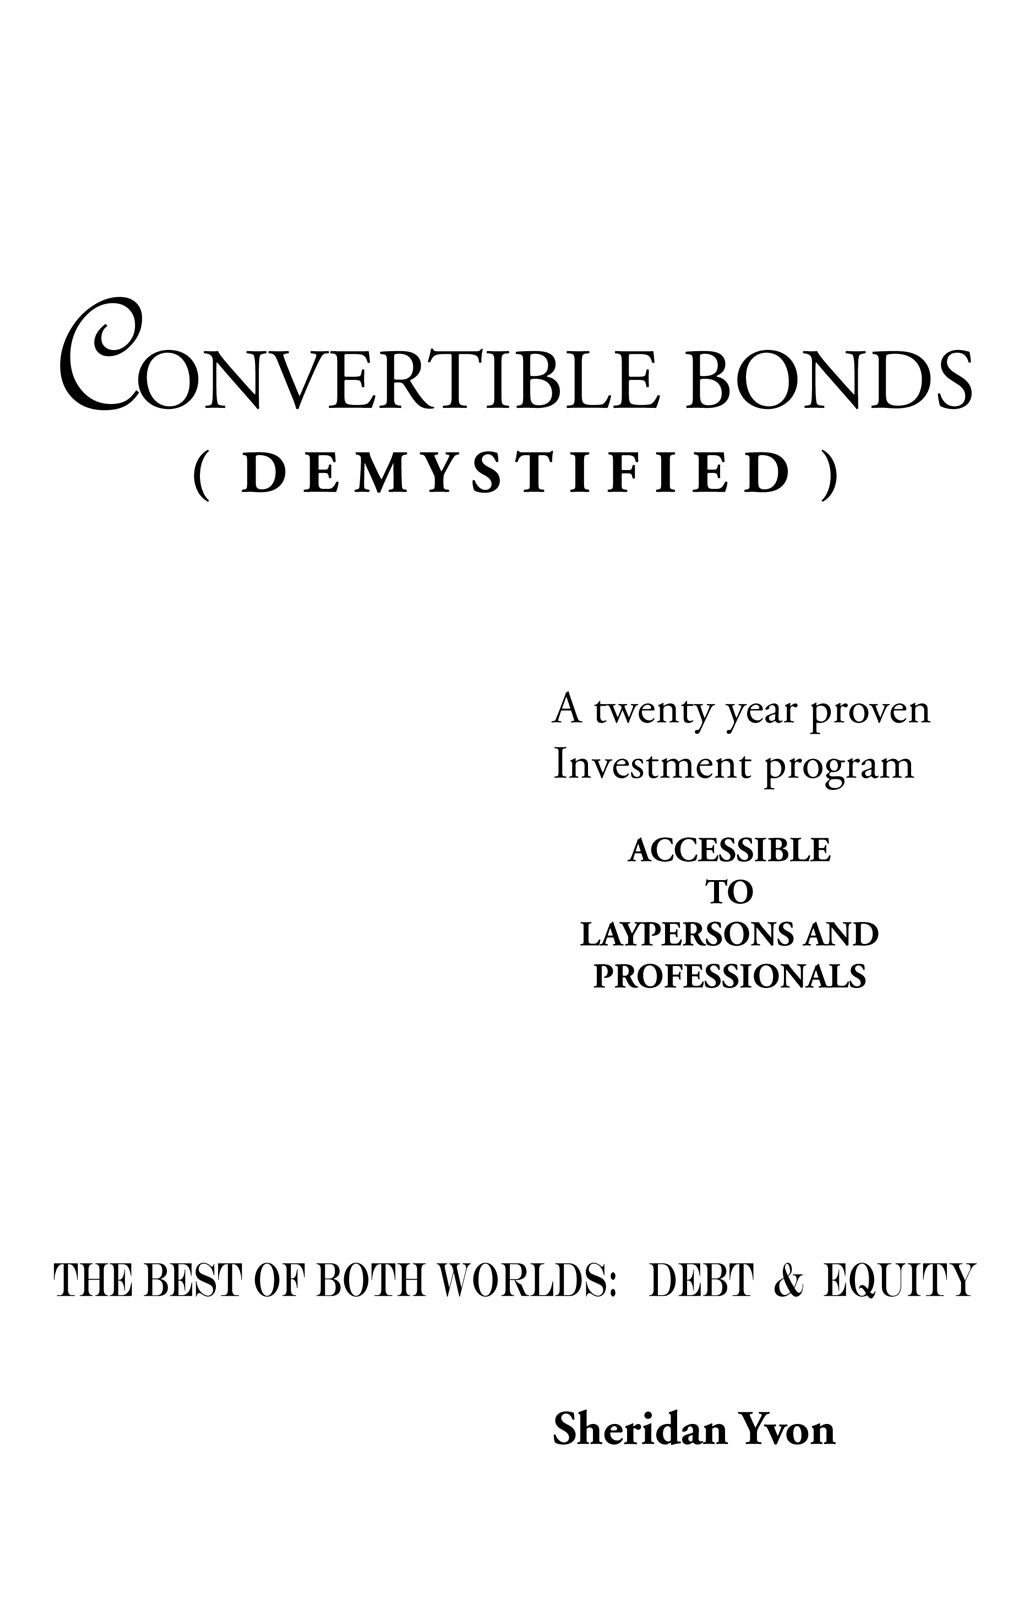 Convertible Bonds (Demystified)